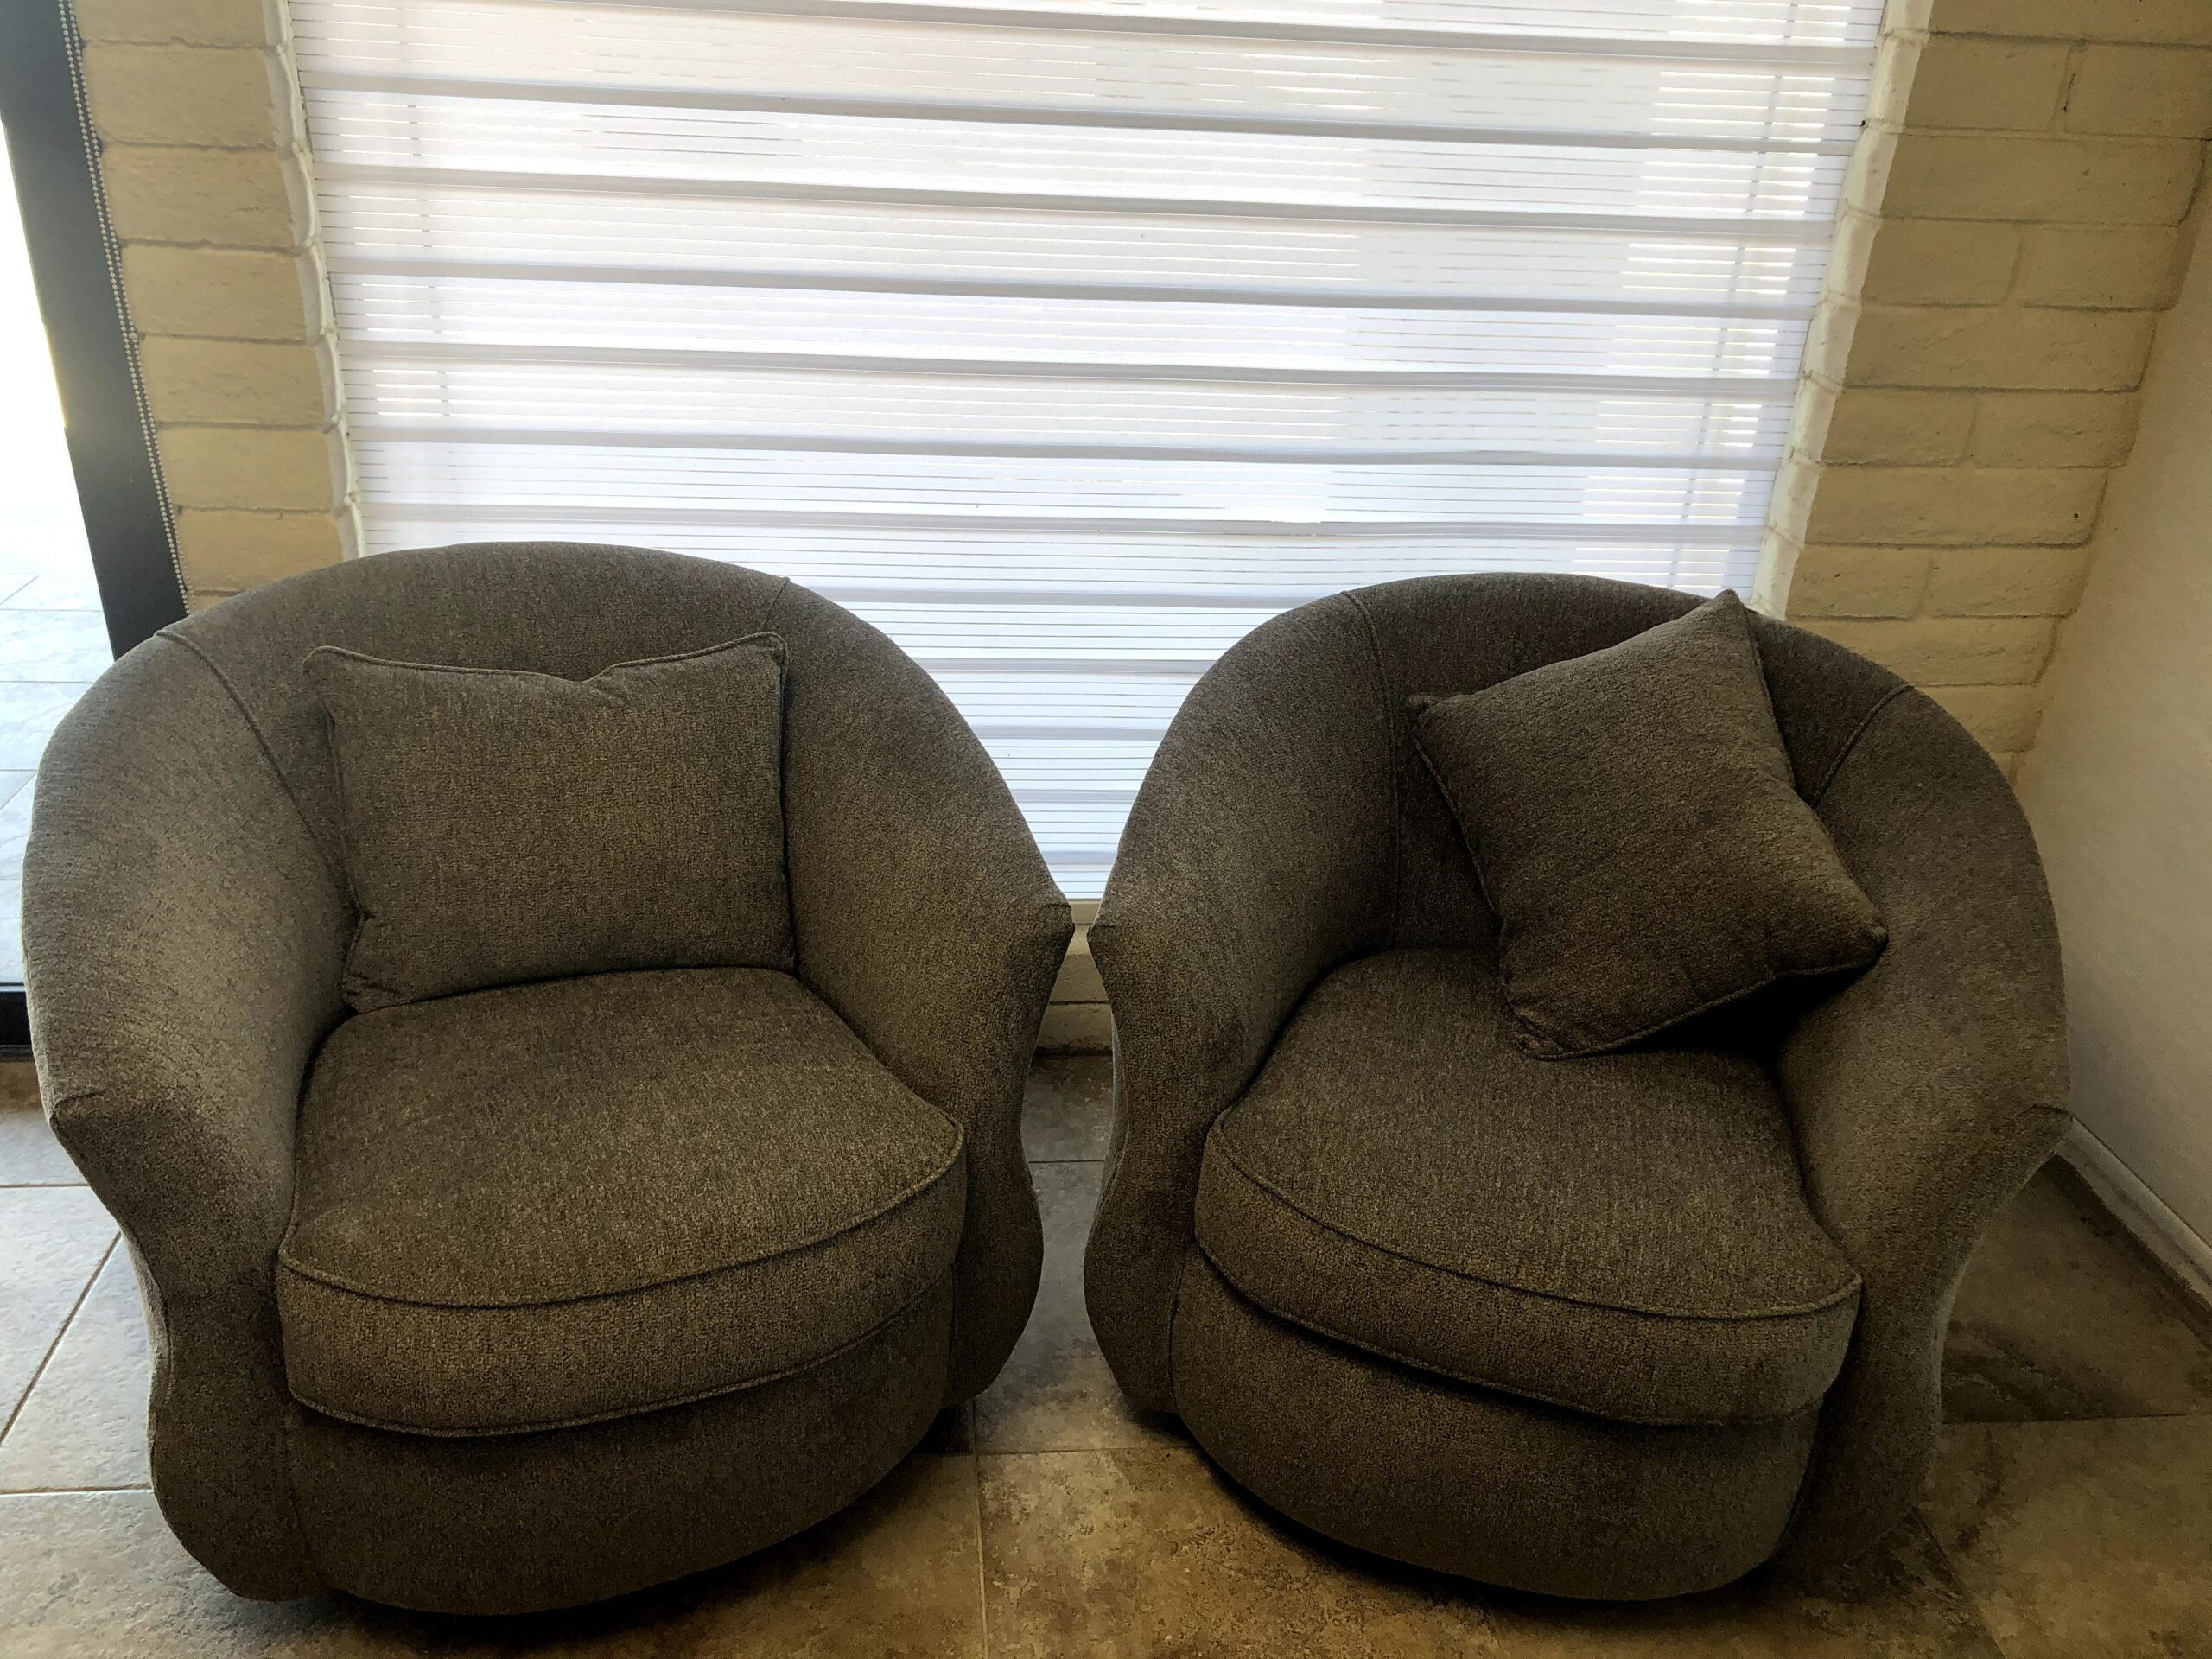 Grey Swivel Chairs $300.00